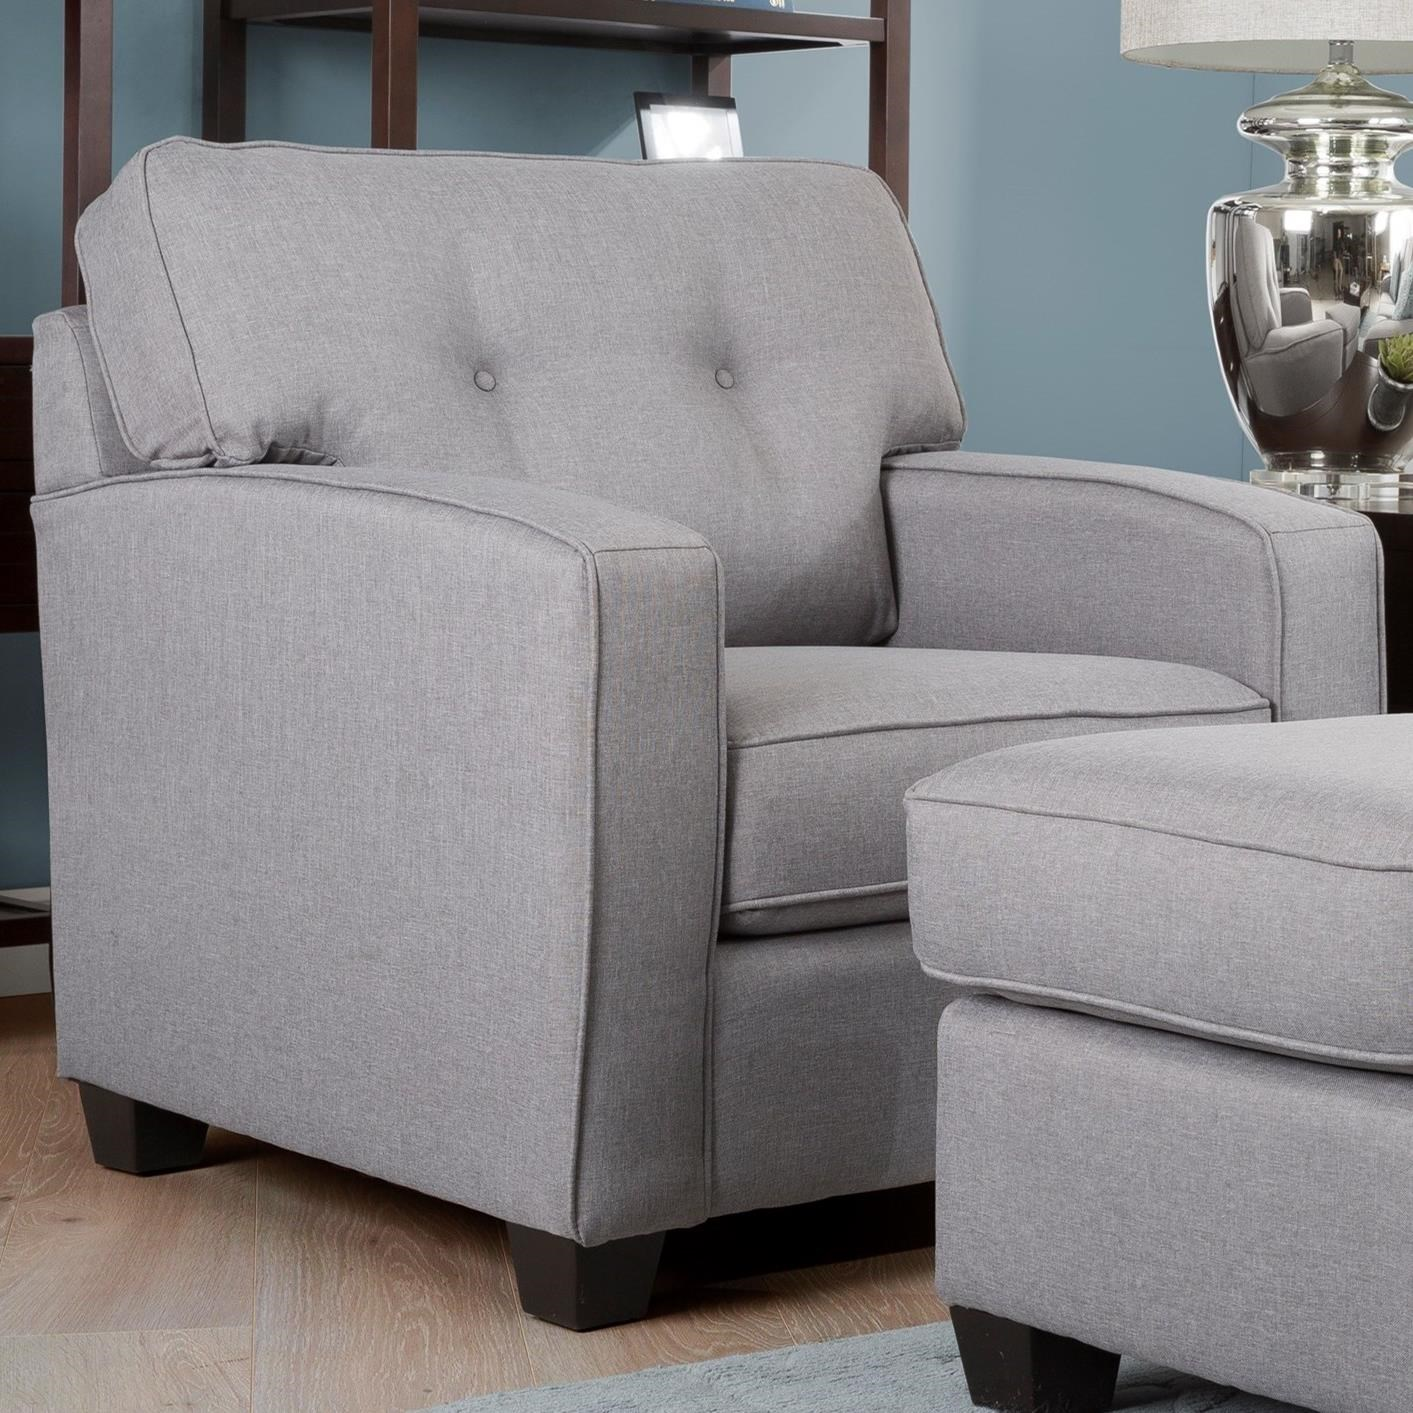 2298 Series Chair by Decor-Rest at Stoney Creek Furniture